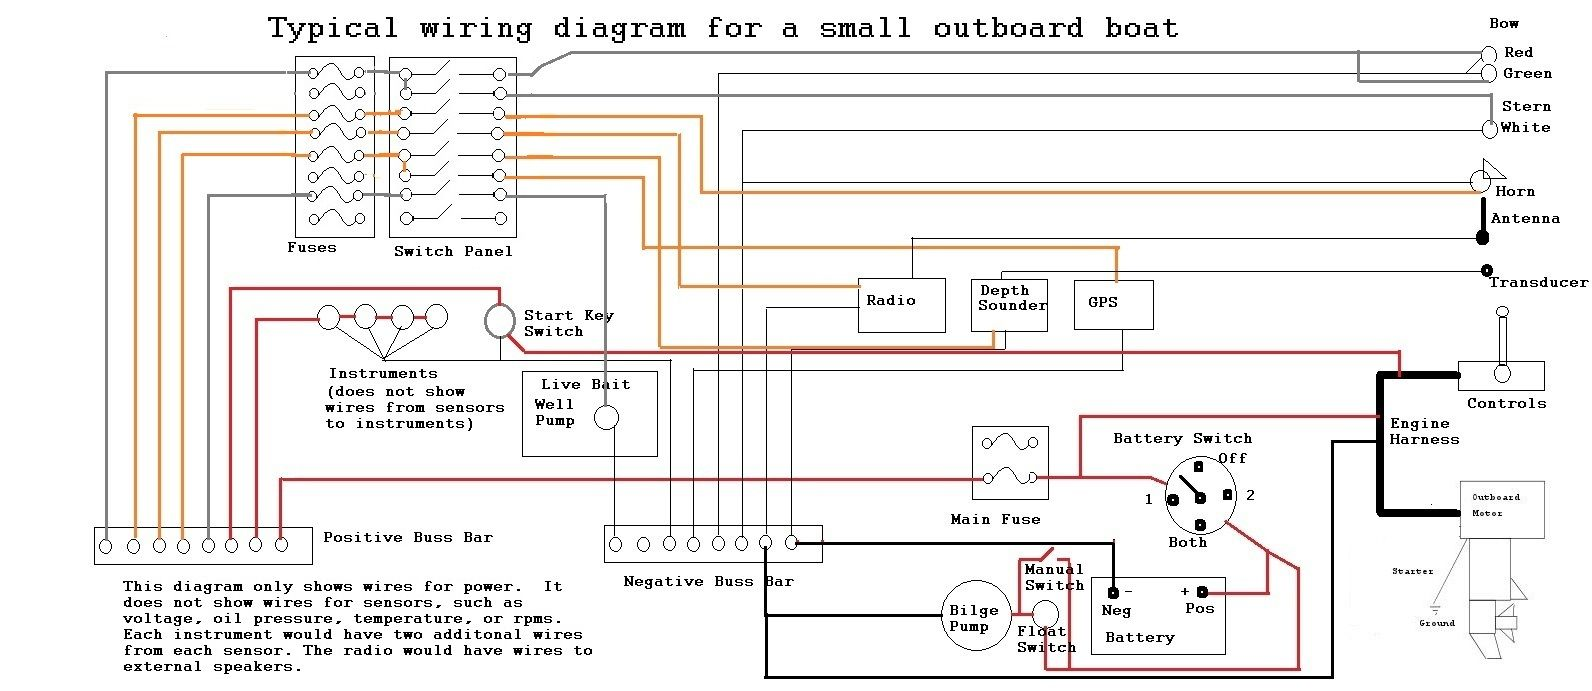 a814f141596be30712aa4f73517bc574 small boat electrical wiring wiring diagram data